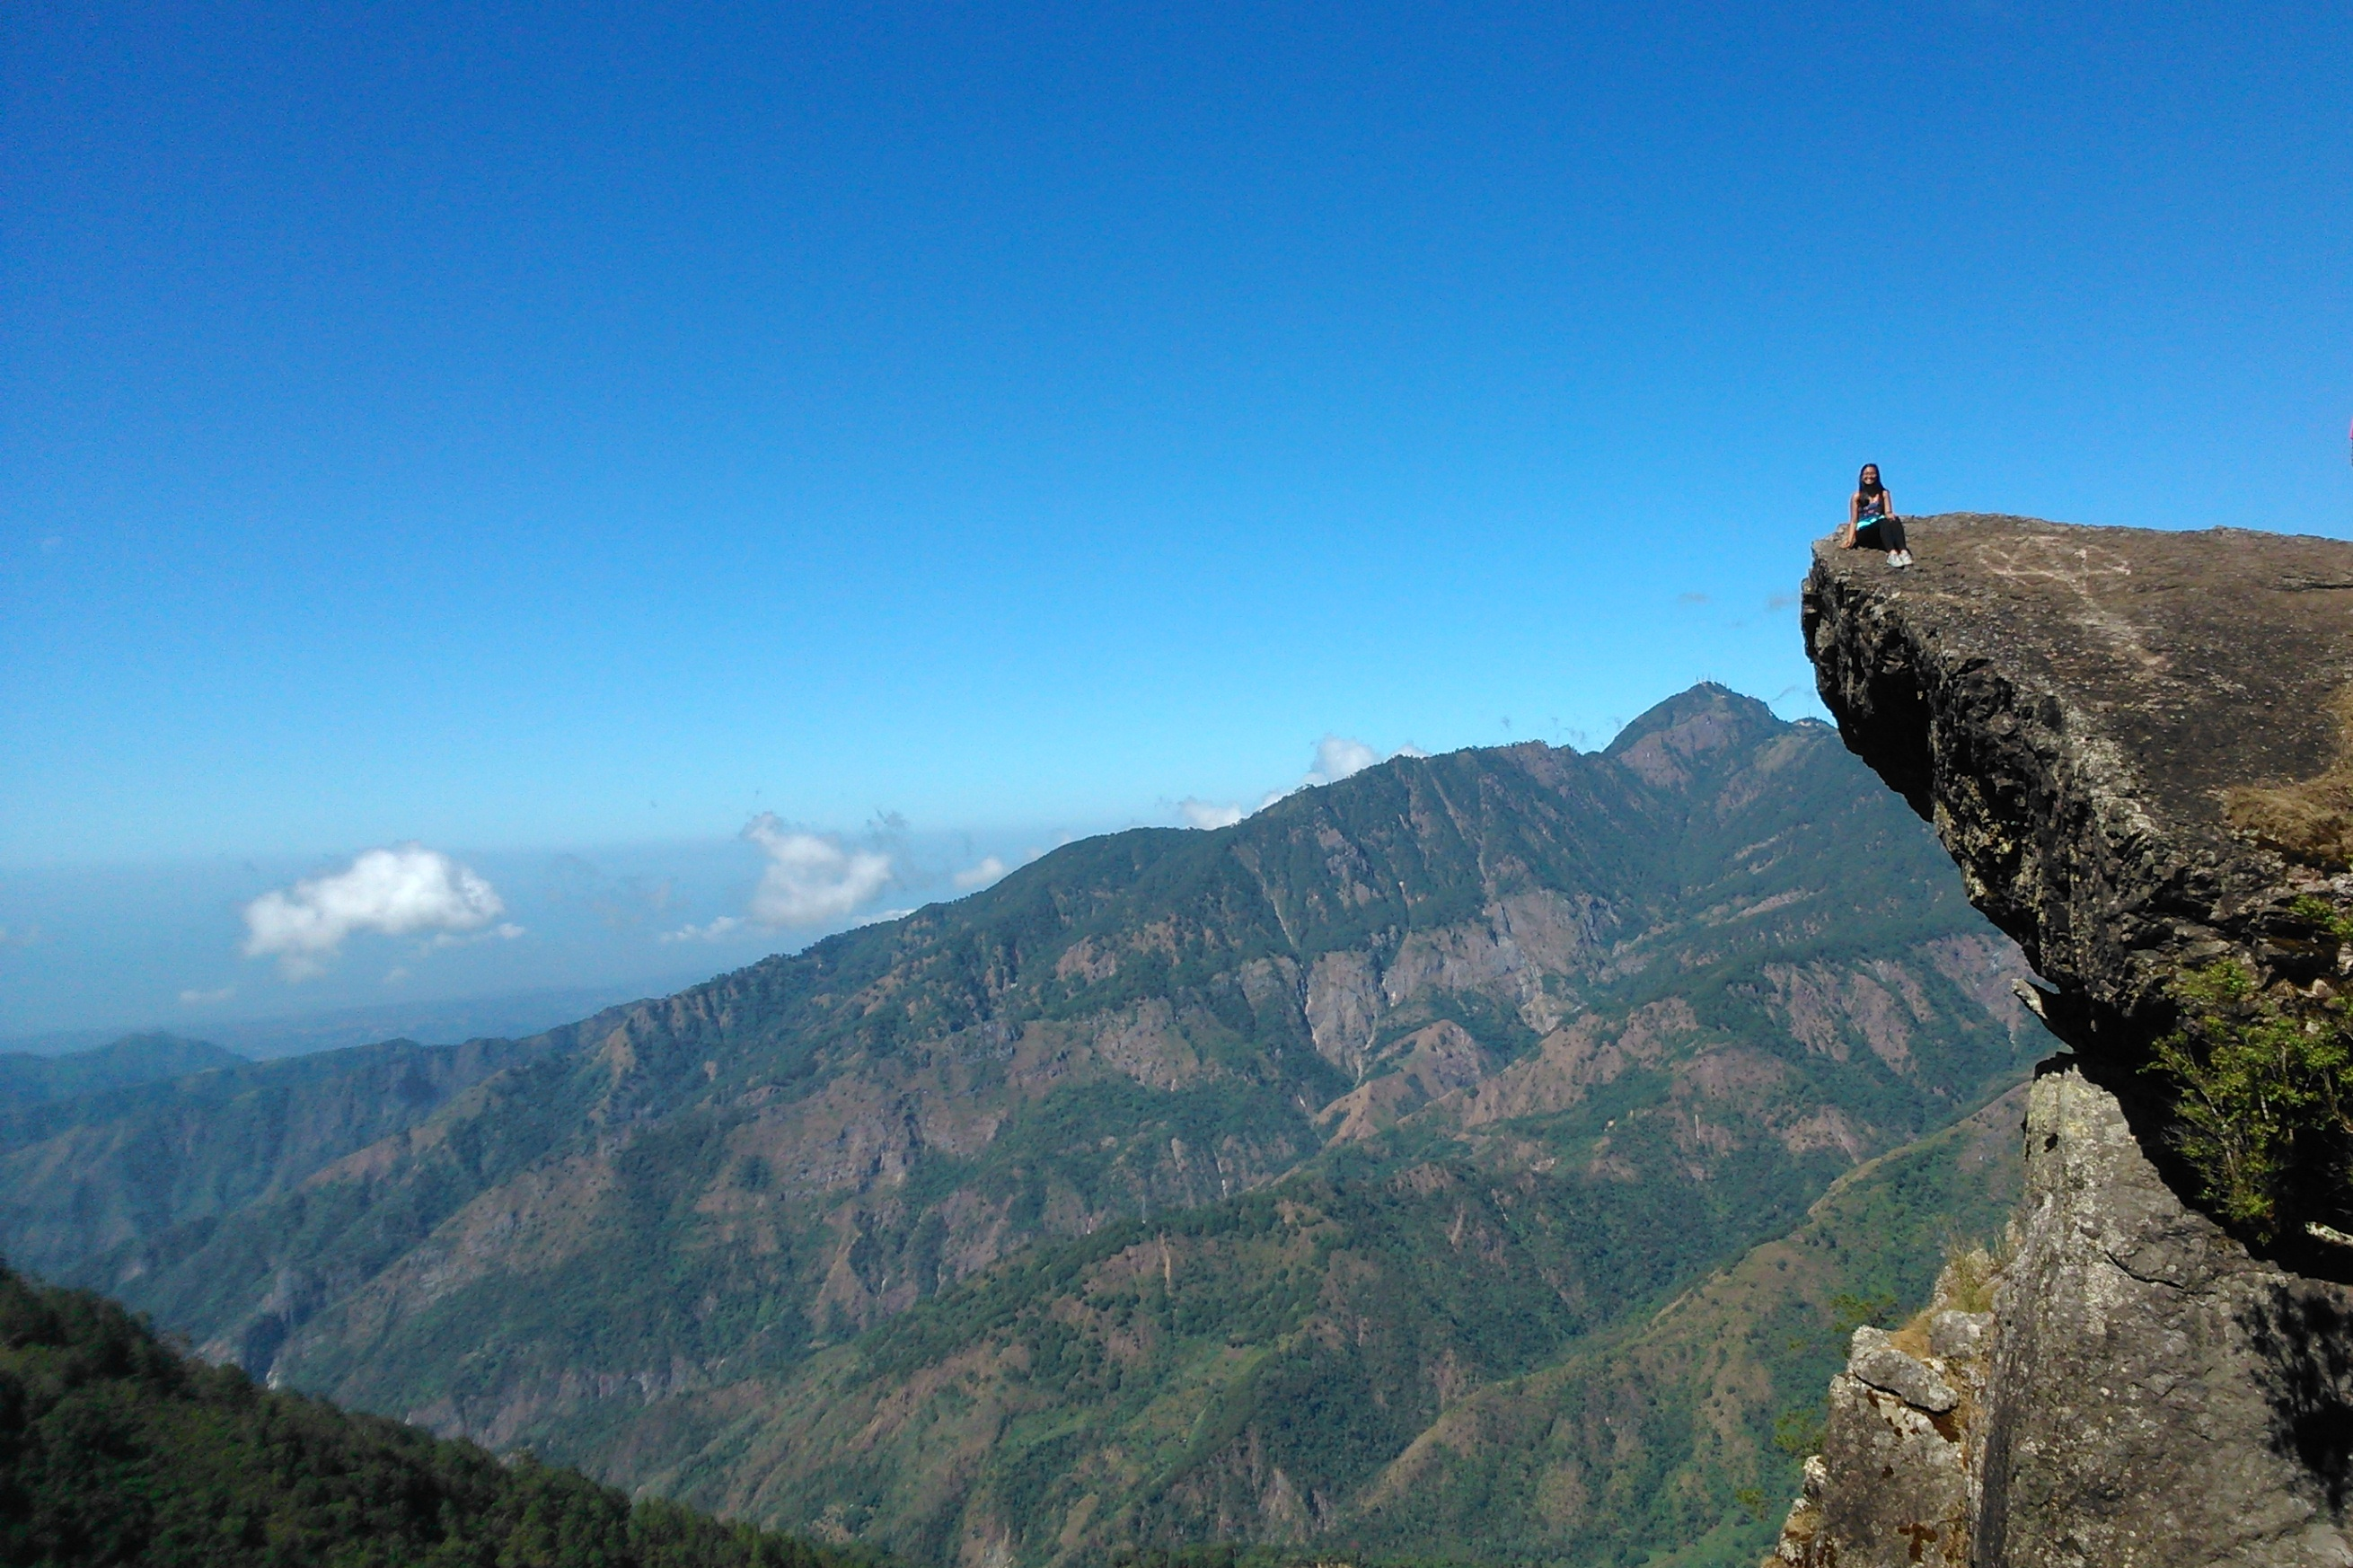 Reaching the Clouds – Mt. Ulap, Cordillera, Philippines